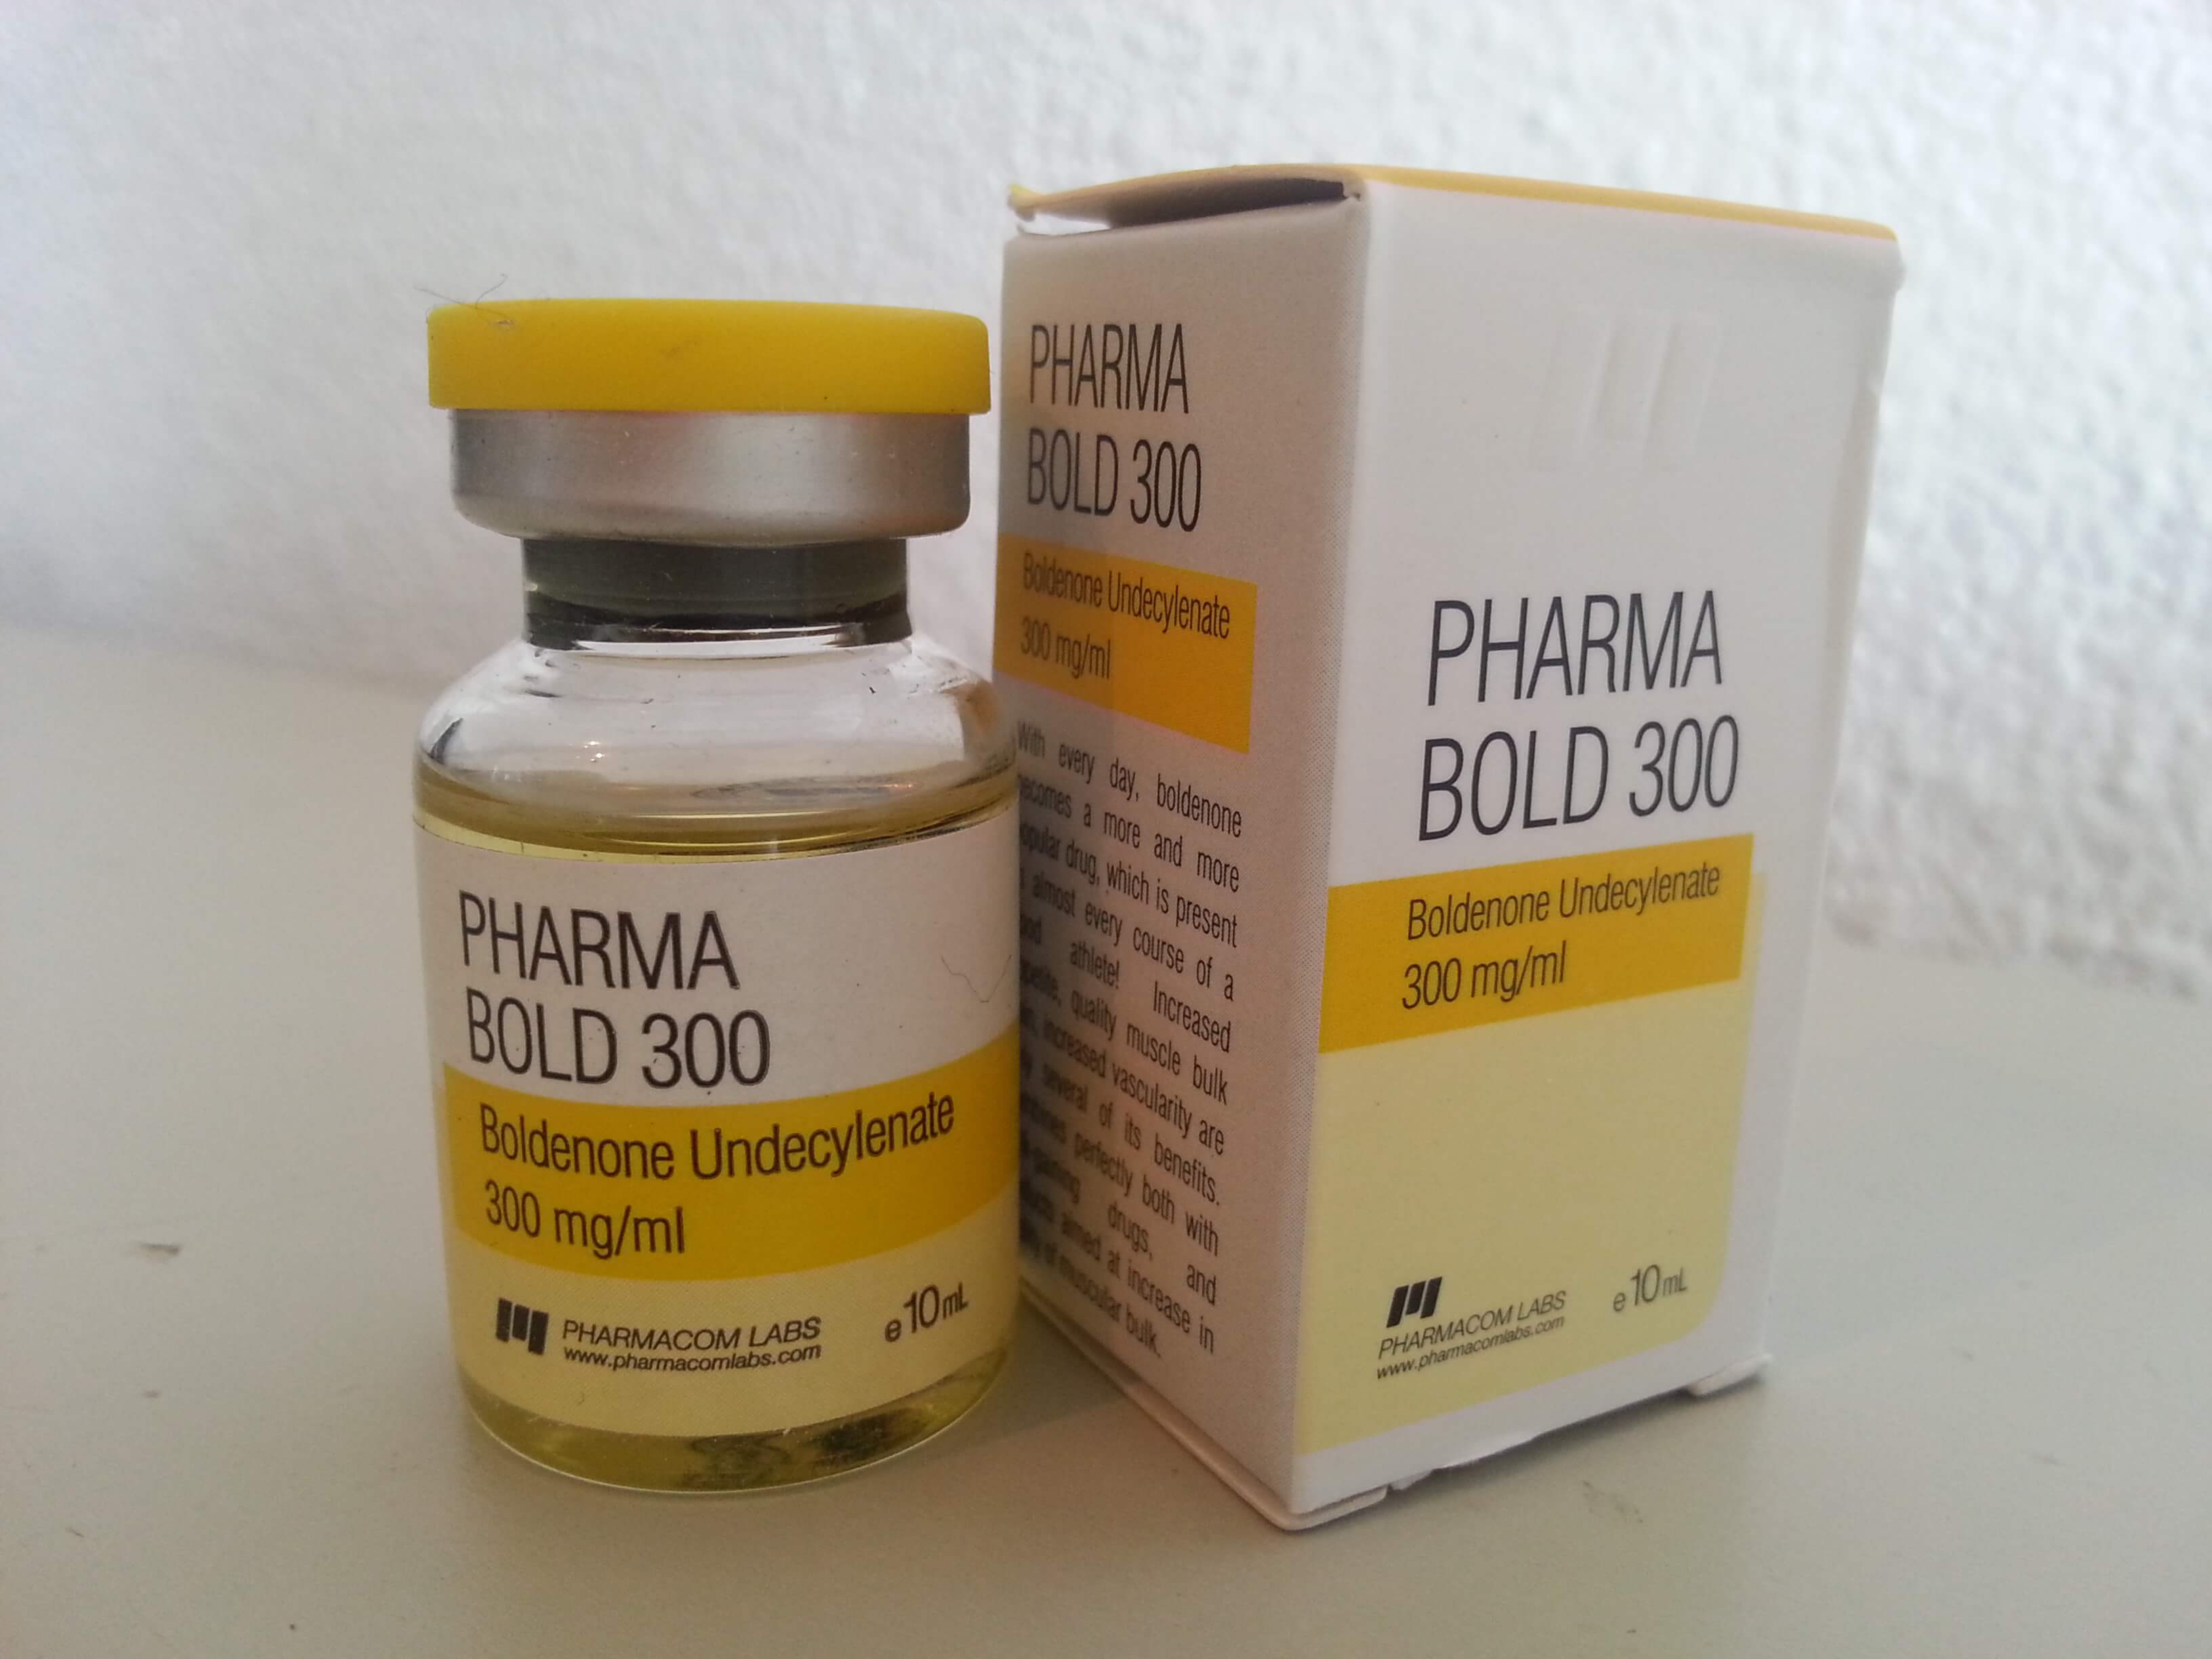 boldenone undecylenate and dianabol